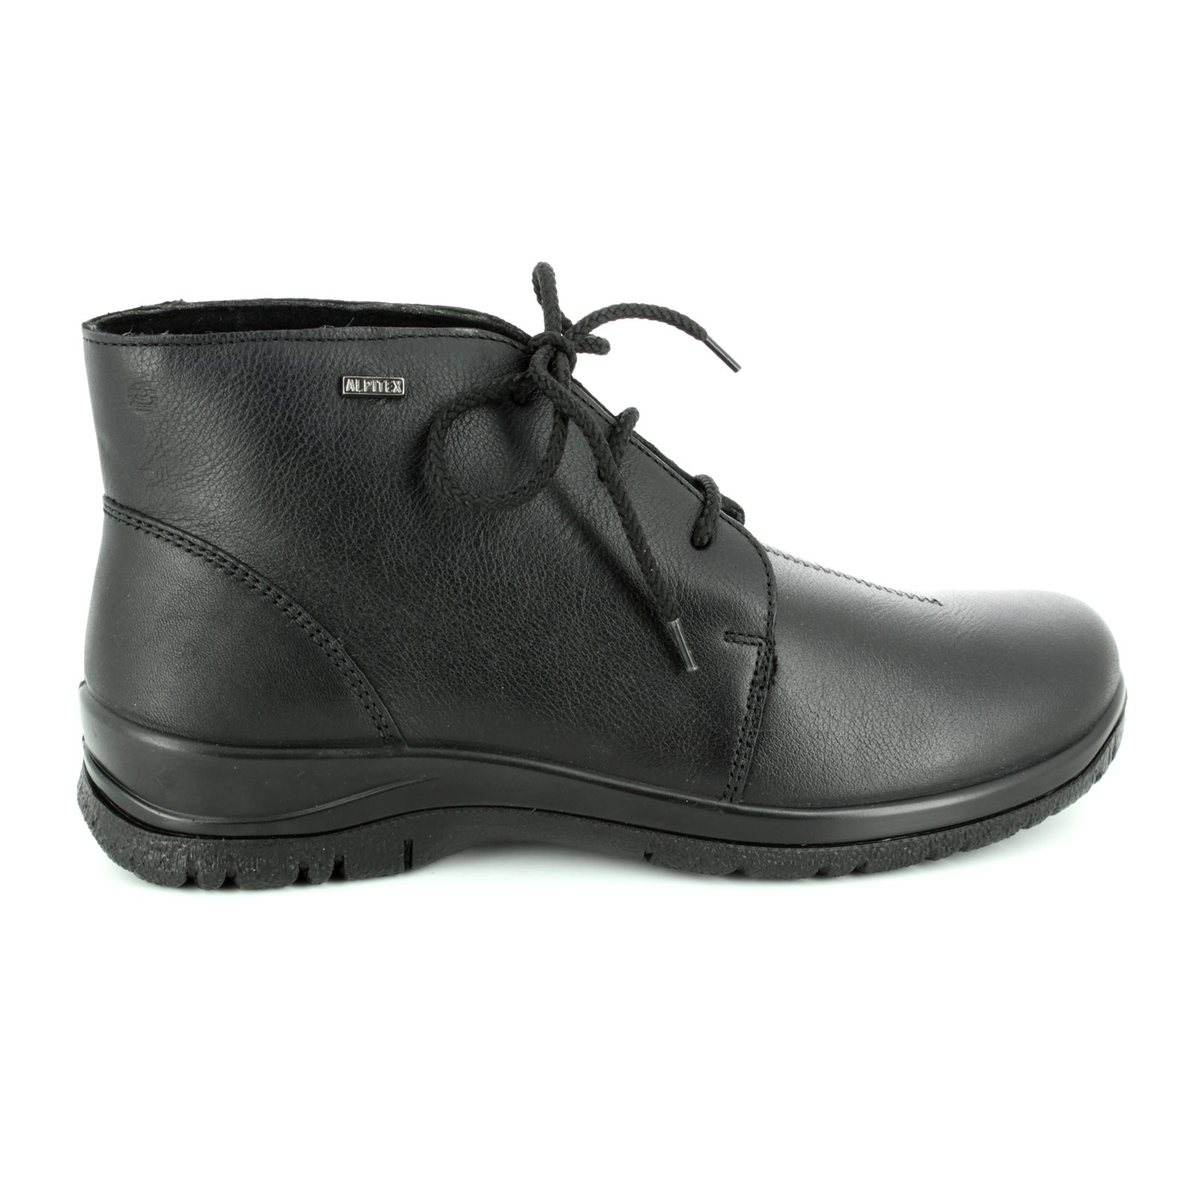 Alpina Ronyboot Tex R Black Ankle Boots - Alpina boots